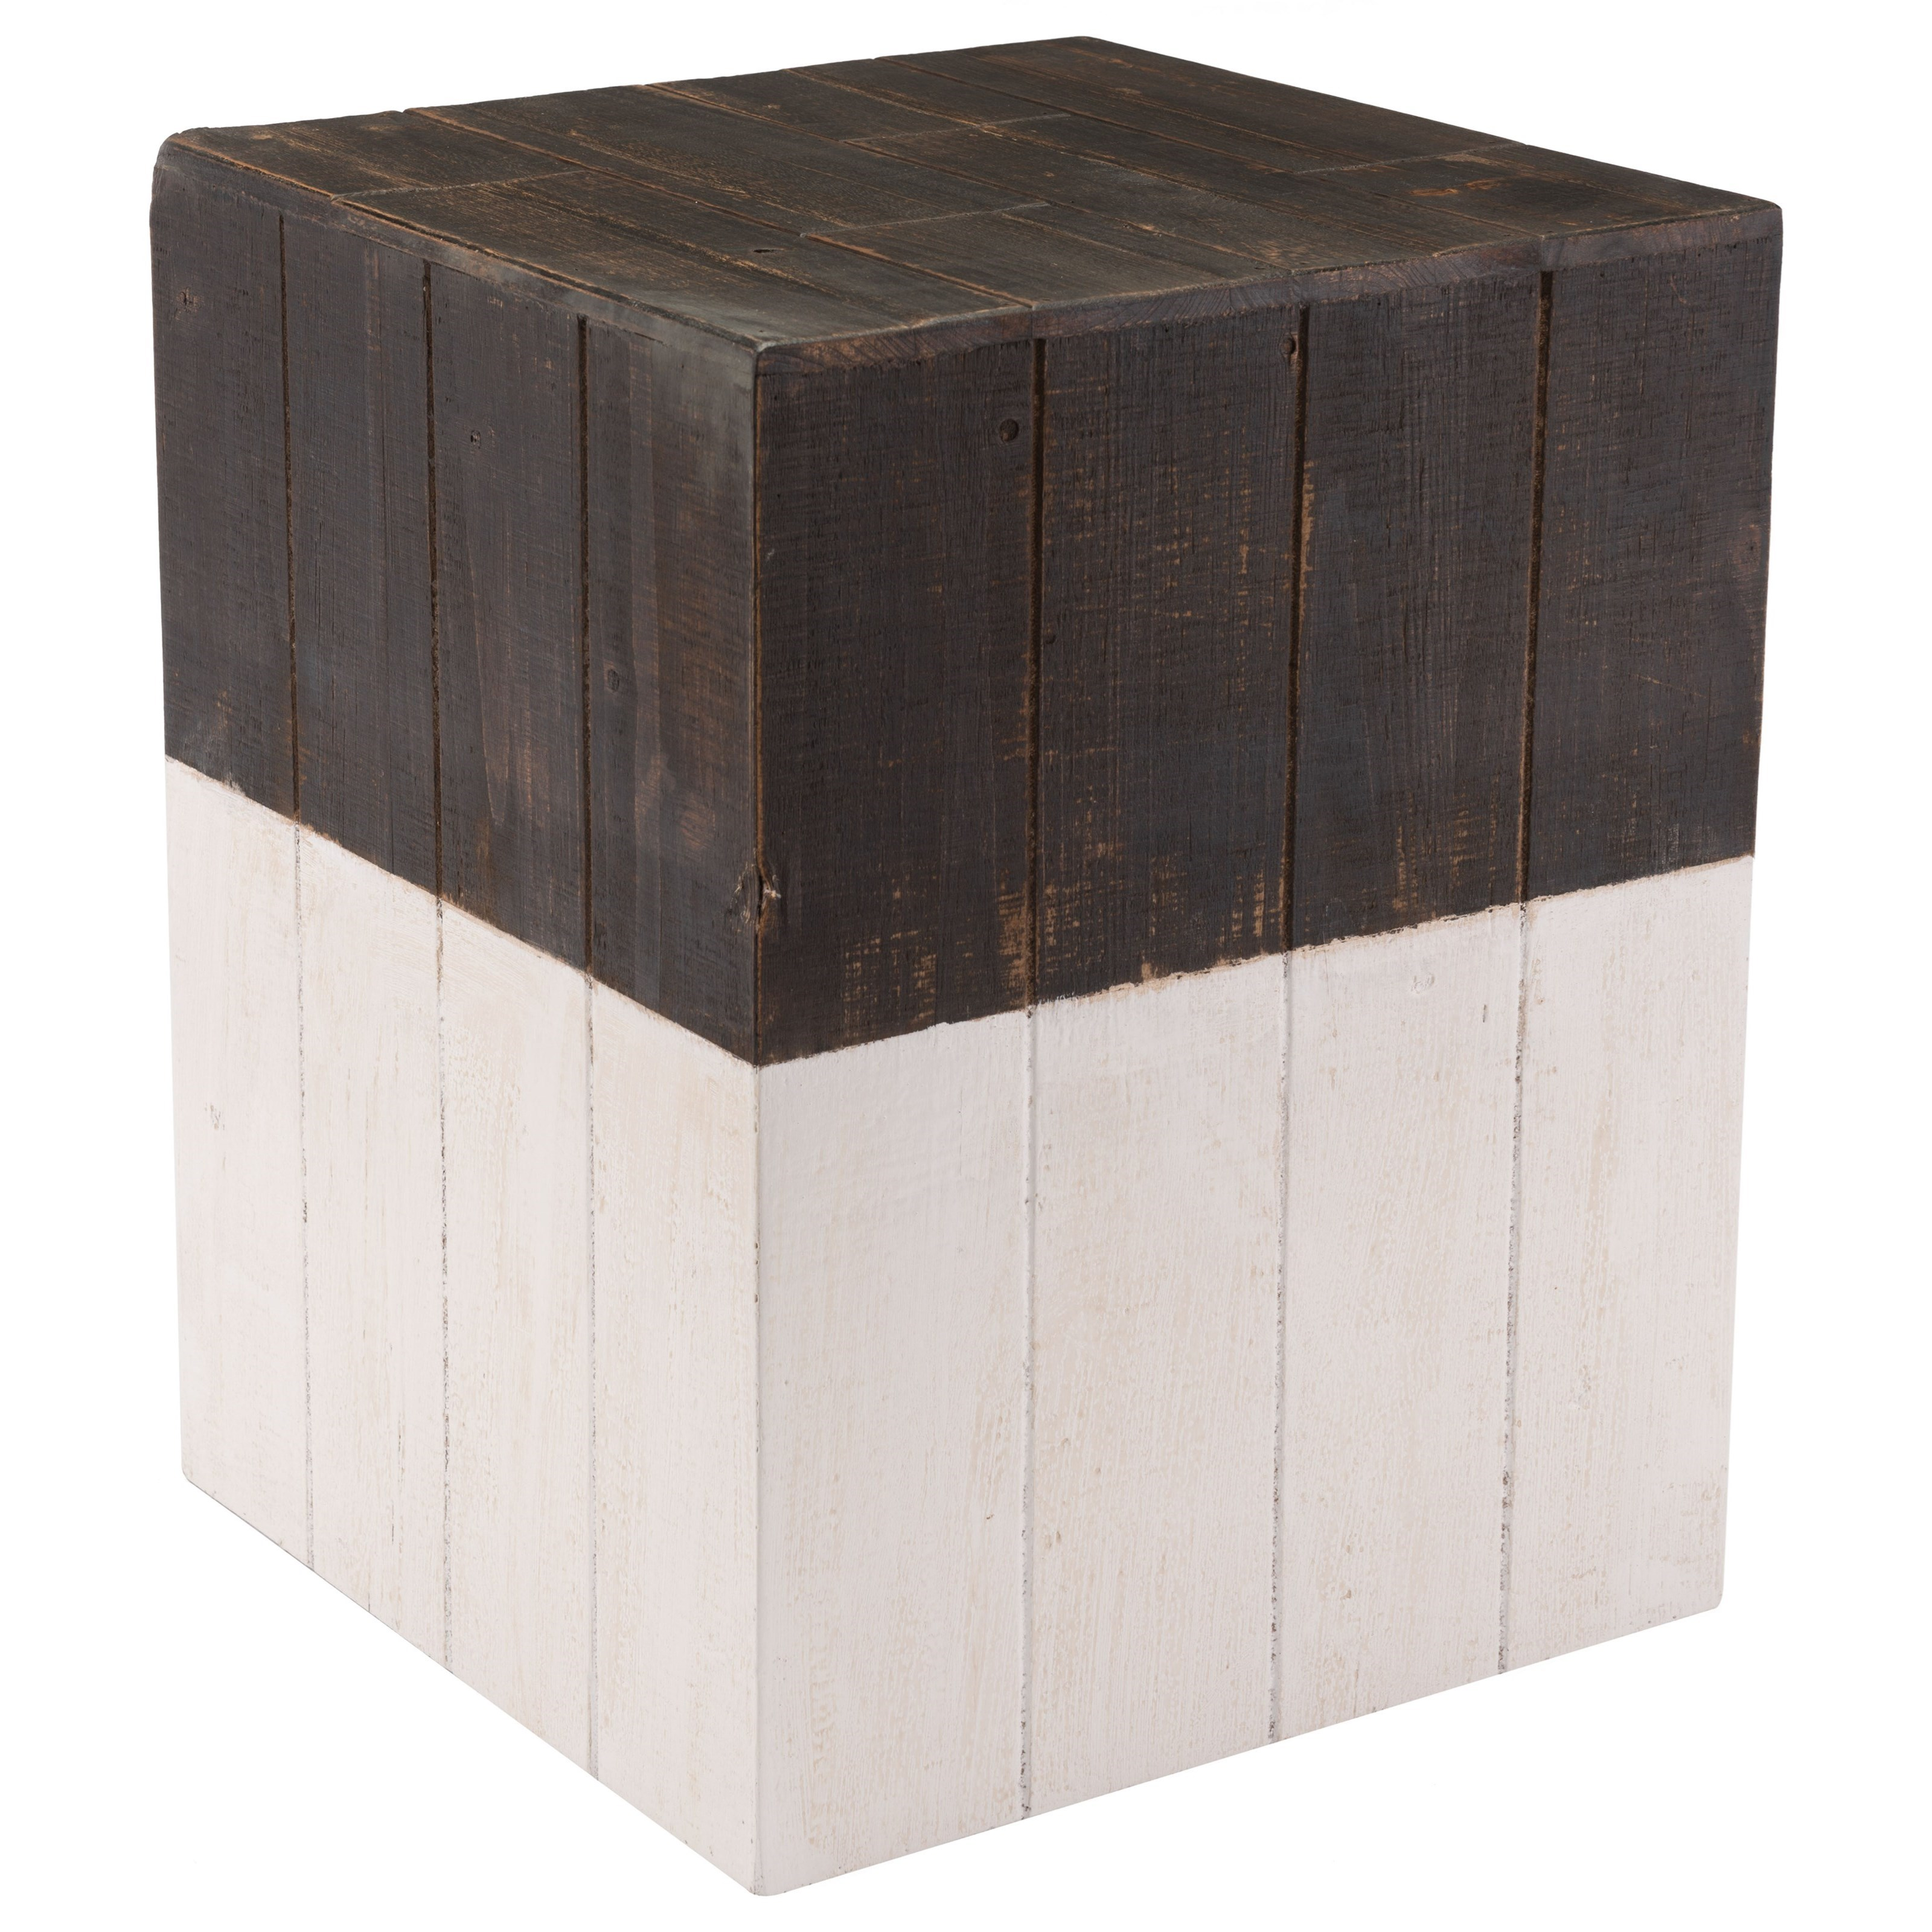 Accent Tables Wooden Square Garden Seat by Zuo at Nassau Furniture and Mattress